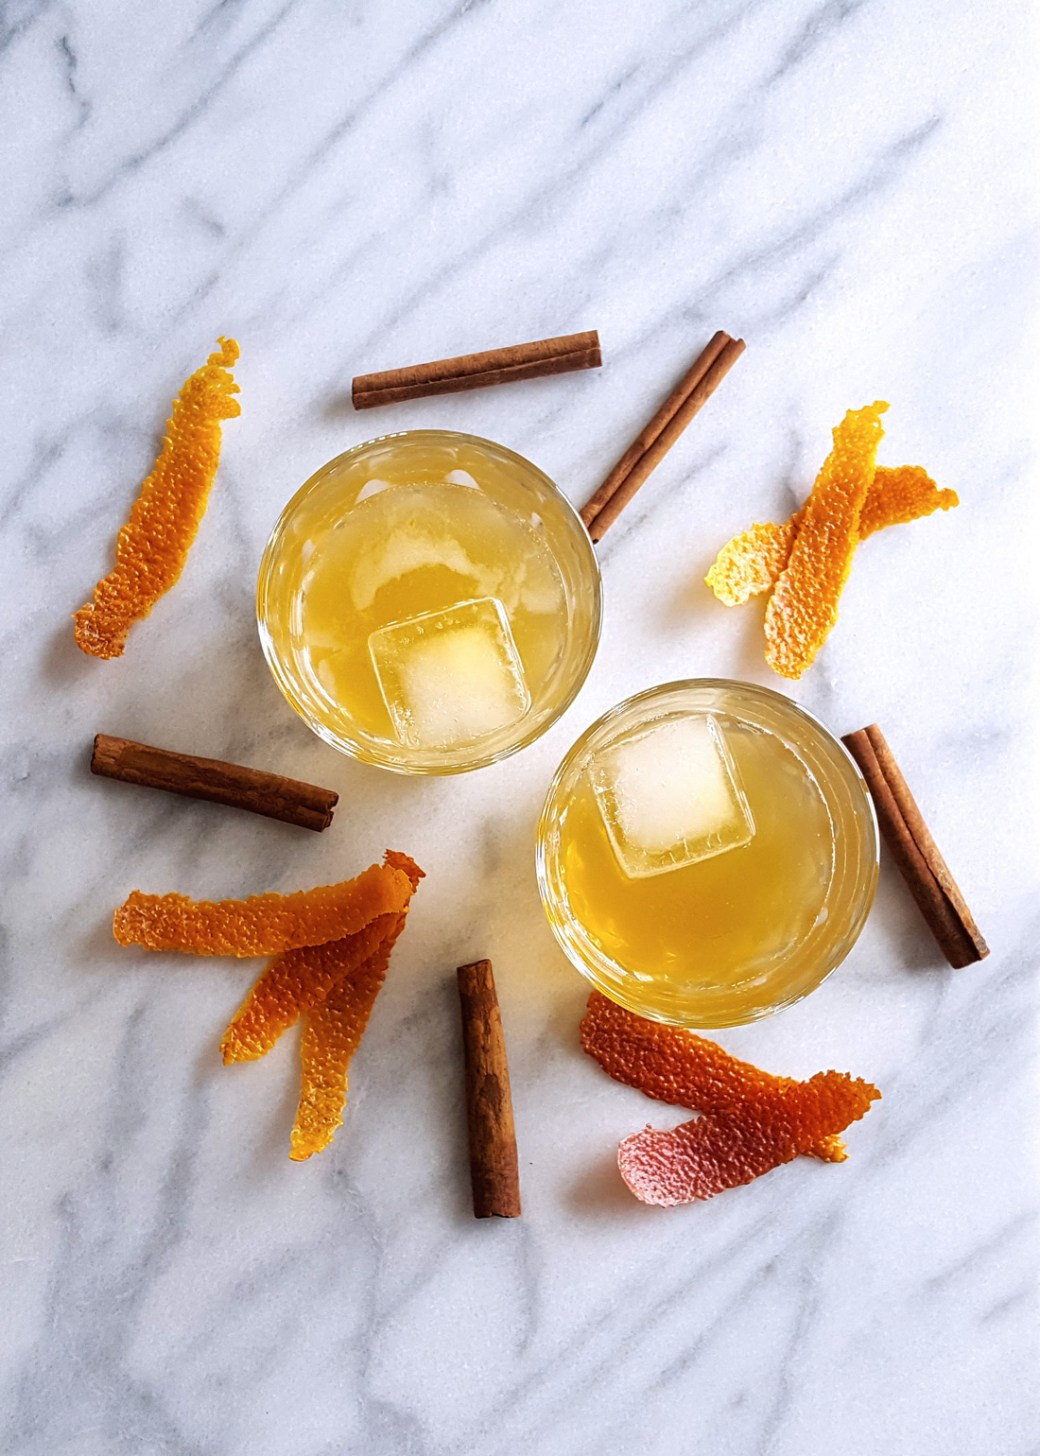 With a rich cinnamon syrup & the scent of blood orange, this Cinnamon Spiced Old Fashioned Cocktail will keep you (and your company) cozy and warm on even the chilliest days. | FeastInThyme.com